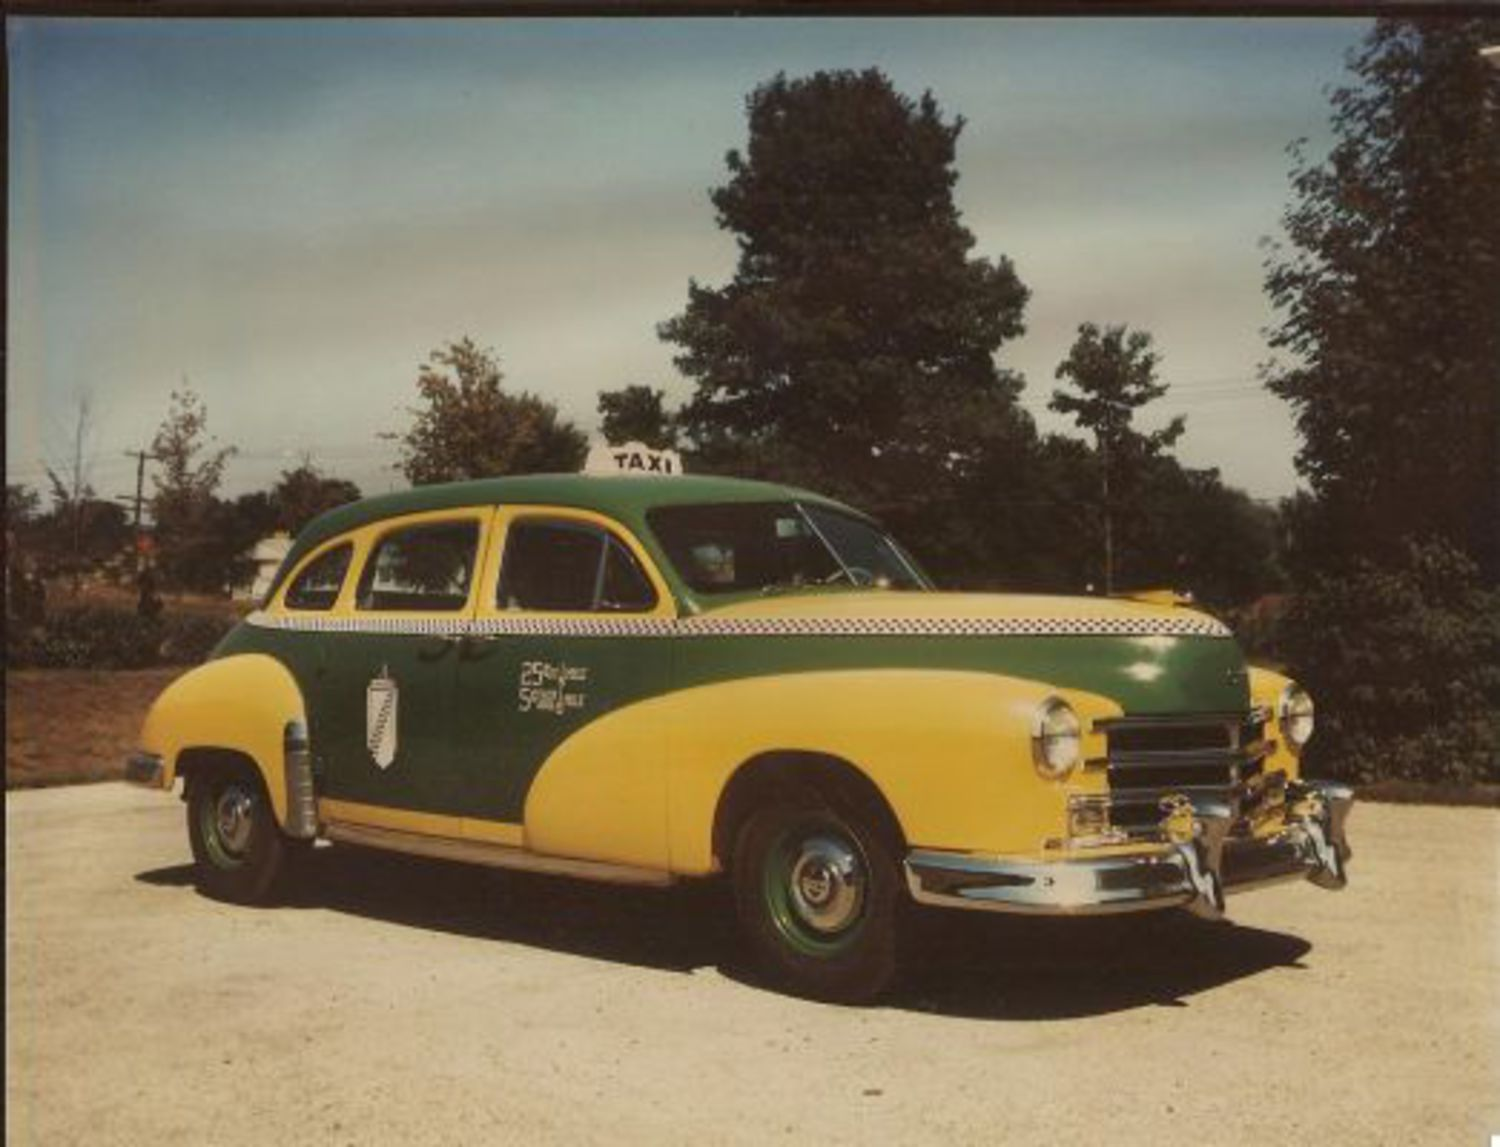 1950s Checker cabs: Roomy and handsome